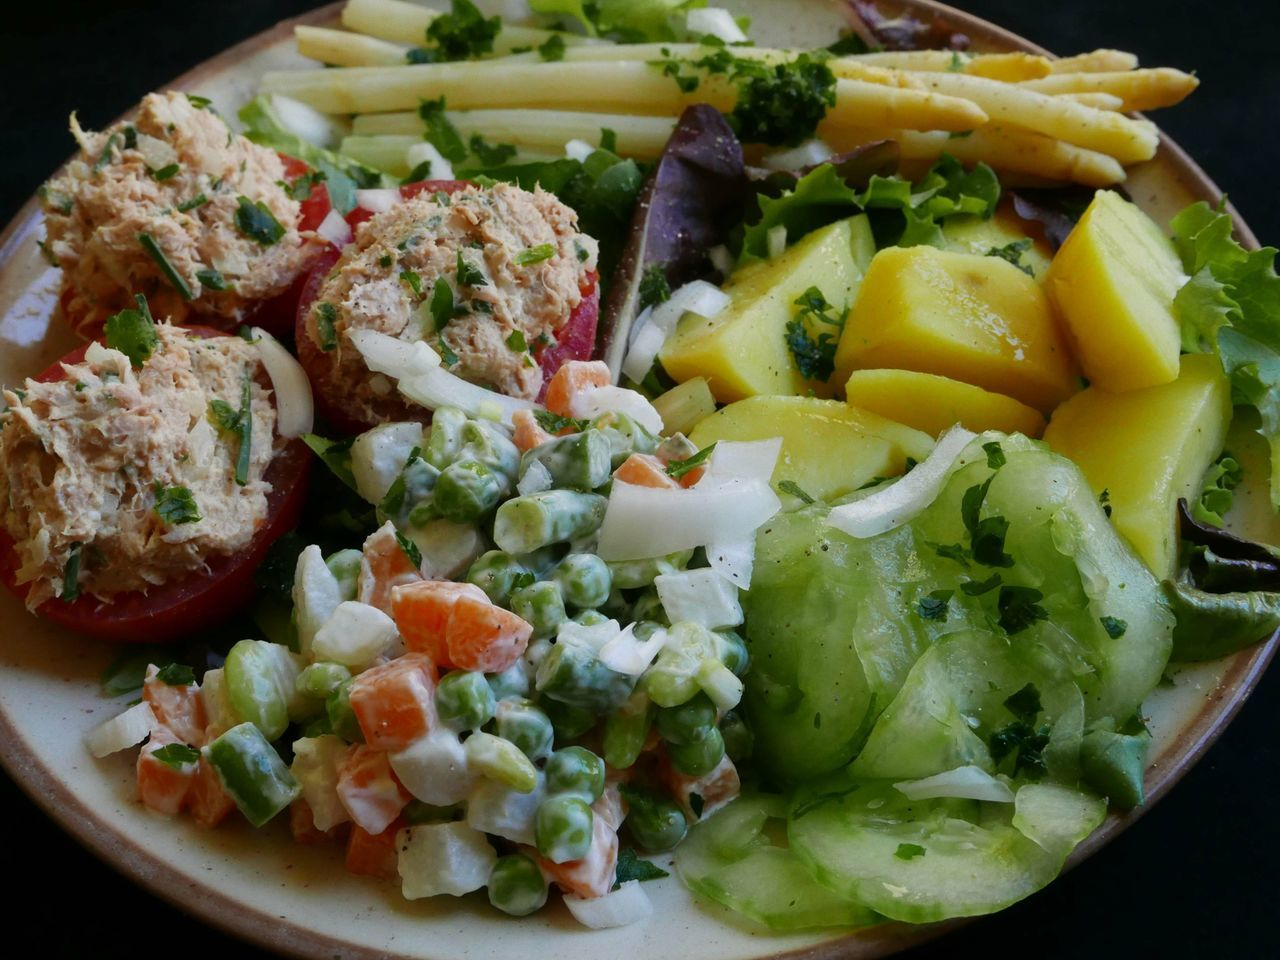 food, food and drink, healthy eating, freshness, salad, ready-to-eat, no people, serving size, plate, close-up, vegetable, indoors, day